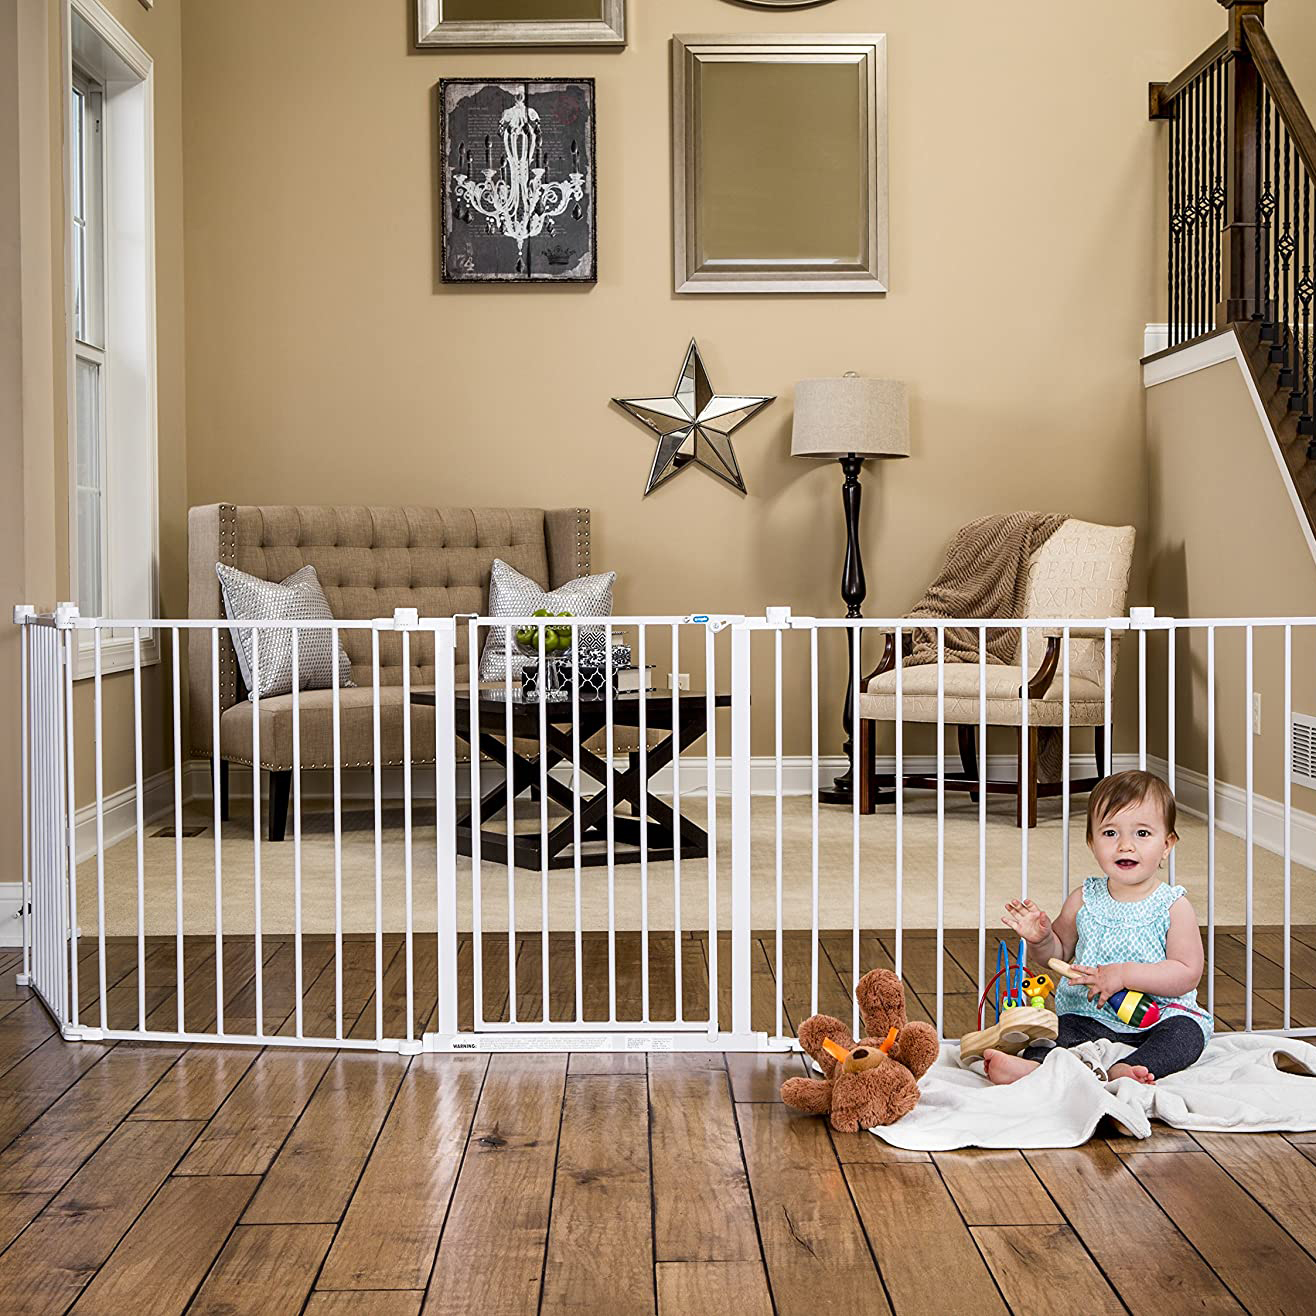 REGALO 2 in 1 Super-Wide Adjustable Baby Gate and Play Yard via Amazon